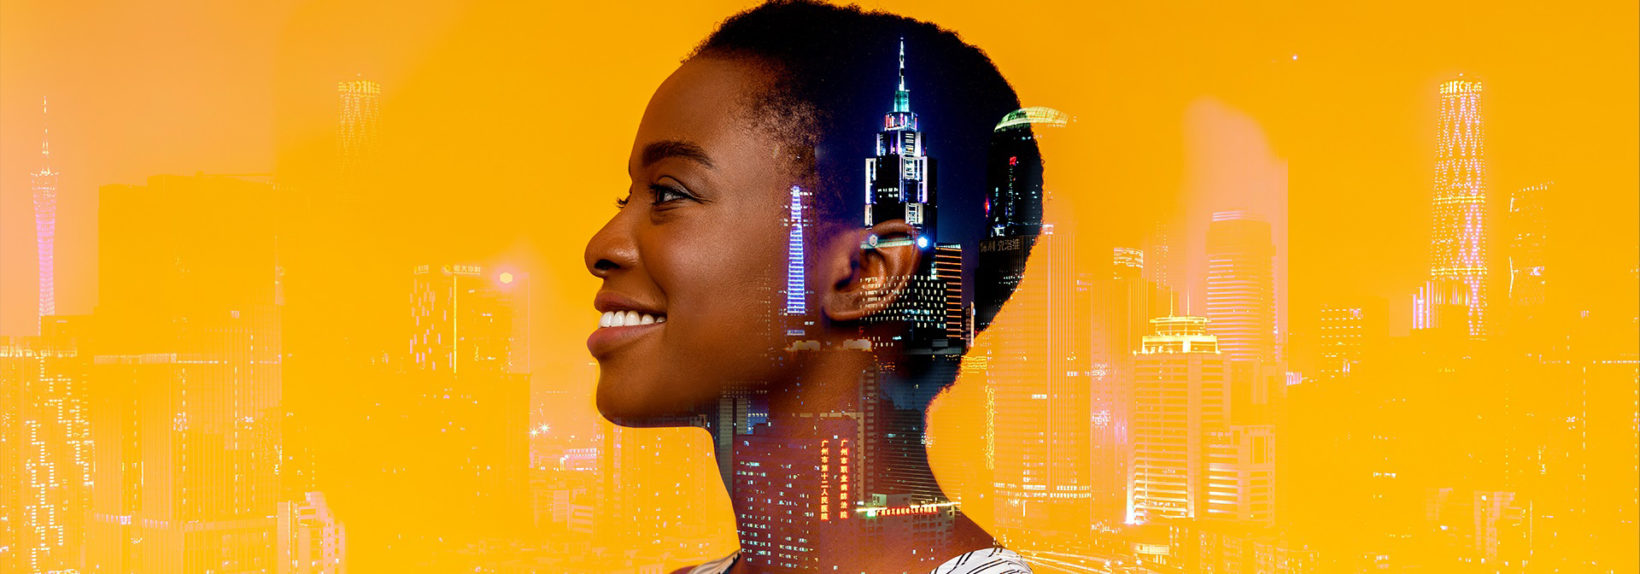 Profile of smiling woman, cityscape superimposed on face